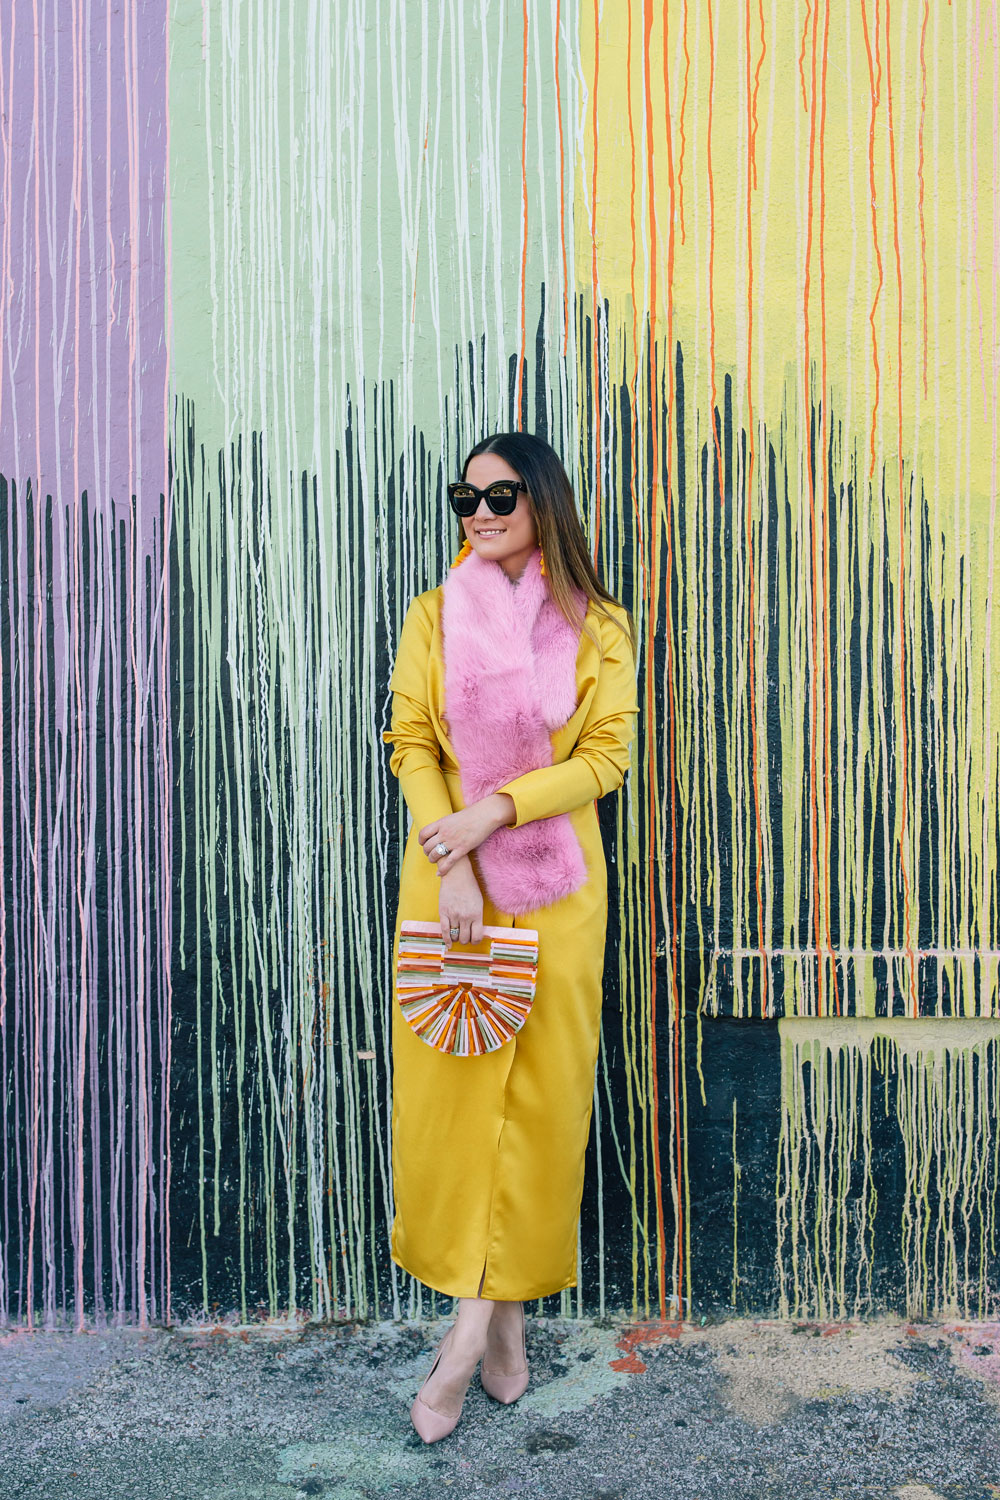 ASOS Yellow Satin Long Sleeve Dress